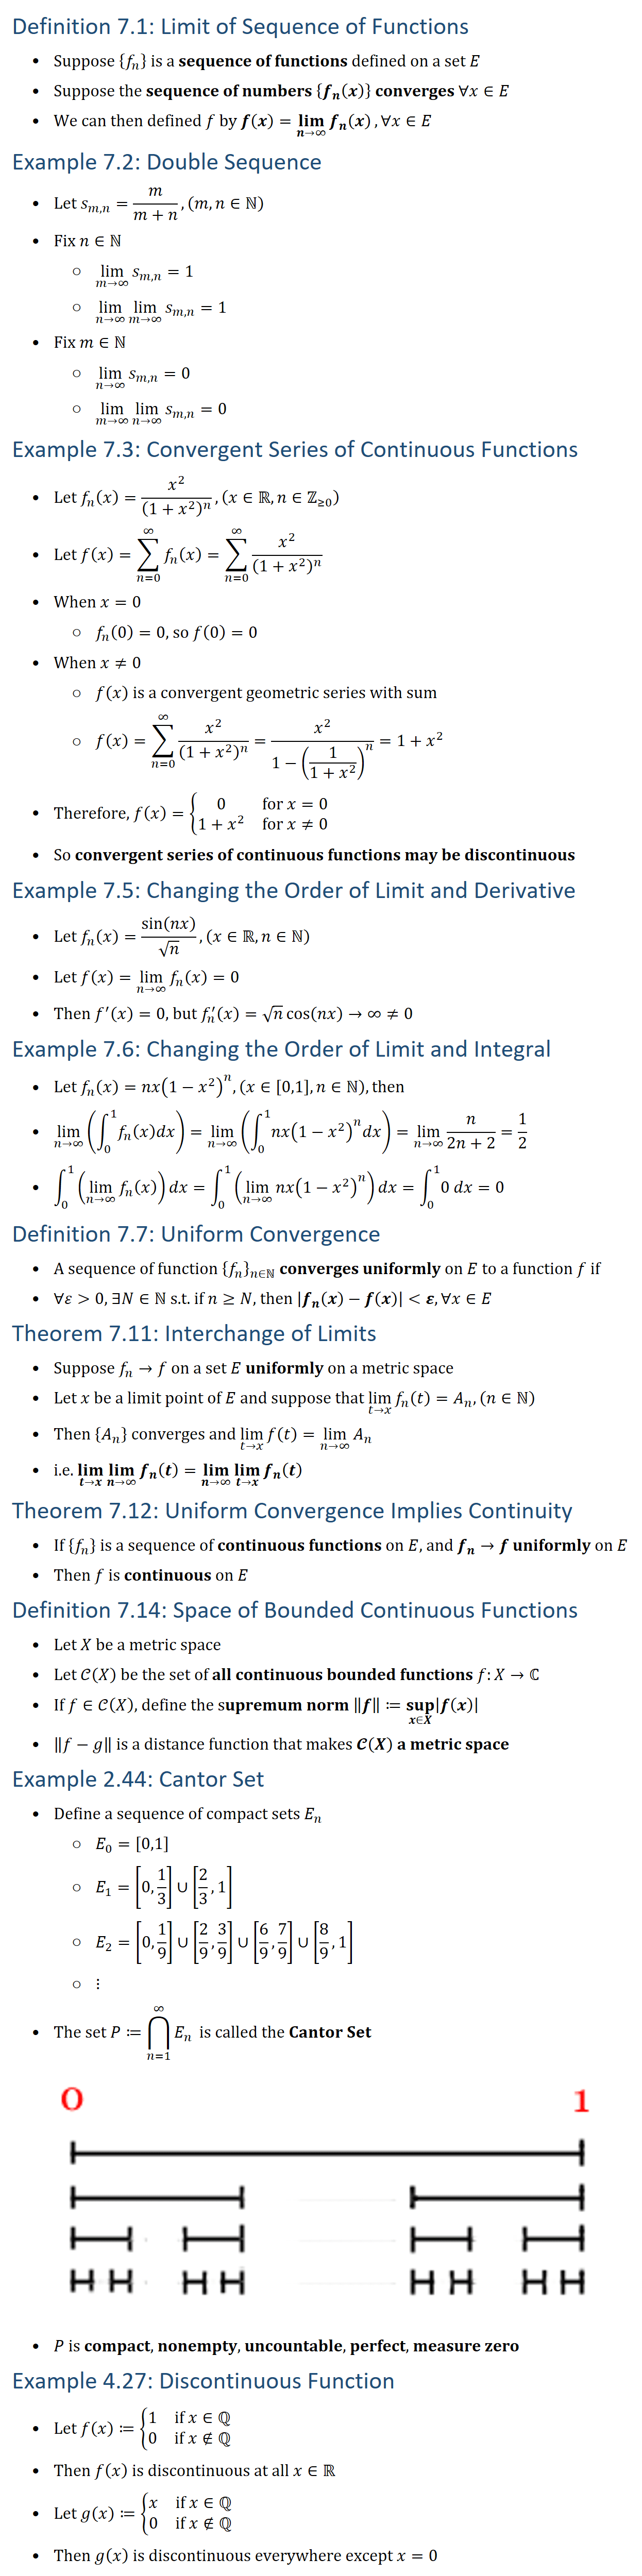 "Definition 7.1: Limit of Sequence of Functions • Suppose {f_n } is a sequence of functions defined on a set E • Suppose the sequence of numbers {f_n (x)} converges ∀x∈E • We can then defined f by f(x)=(lim)┬(n→∞)⁡〖f_n (x)〗,∀x∈E Example 7.2: Double Sequence • ""Let"" s_(m,n)=m/(m+n),(m,n∈N • Fix n∈N ○ lim┬(m→∞)⁡〖s_(m,n) 〗=1 ○ lim┬(n→∞)⁡lim┬(m→∞)⁡〖s_(m,n) 〗 =1 • Fix m∈N ○ lim┬(n→∞)⁡〖s_(m,n) 〗=0 ○ lim┬(m→∞)⁡lim┬(n→∞)⁡〖s_(m,n) 〗 =0 Example 7.3: Convergent Series of Continuous Functions • Let f_n (x)=x^2/(1+x^2 )^n ,(x∈Rn∈Z(≥0) ) • Let f(x)=∑_(n=0)^∞▒〖f_n (x) 〗=∑_(n=0)^∞▒x^2/(1+x^2 )^n • When x=0 ○ f_n (0)=0, so f(0)=0 • When x≠0 ○ f(x) is a convergent geometric series with sum ○ f(x)=∑_(n=0)^∞▒x^2/(1+x^2 )^n =x^2/(1−(1/(1+x^2 ))^n )=1+x^2 • Therefore, f(x)={■8(0&for x=0@1+x^2&for x≠0)┤ • So convergent series of continuous functions may be discontinuous Example 7.5: Changing the Order of Limit and Derivative • Let f_n (x)=sin⁡(nx)/√n, (x∈Rn∈N • Let f(x)=lim┬(n→∞)⁡〖f_n (x)〗=0 • Then f^′ (x)=0, but f_n^′ (x)=√n cos⁡(nx)→∞≠0 Example 7.6: Changing the Order of Limit and Integral • Let f_n (x)=nx(1−x^2 )^n, (x∈[0,1],n∈N, then • lim┬(n→∞)⁡(∫_0^1▒〖f_n (x)dx〗)=lim┬(n→∞)⁡(∫_0^1▒〖nx(1−x^2 )^n dx〗)=lim┬(n→∞)⁡〖n/(2n+2)〗=1/2 • ∫_0^1▒(lim┬(n→∞)⁡〖f_n (x)〗 ) dx=∫_0^1▒(lim┬(n→∞)⁡〖nx(1−x^2 )^n 〗 ) dx=∫_0^1▒〖0 dx〗=0 Definition 7.7: Uniform Convergence • A sequence of function {f_n }_(n∈N converges uniformly on E to a function f if • ∀ε 0, ∃N∈N s.t. if n≥N, then 